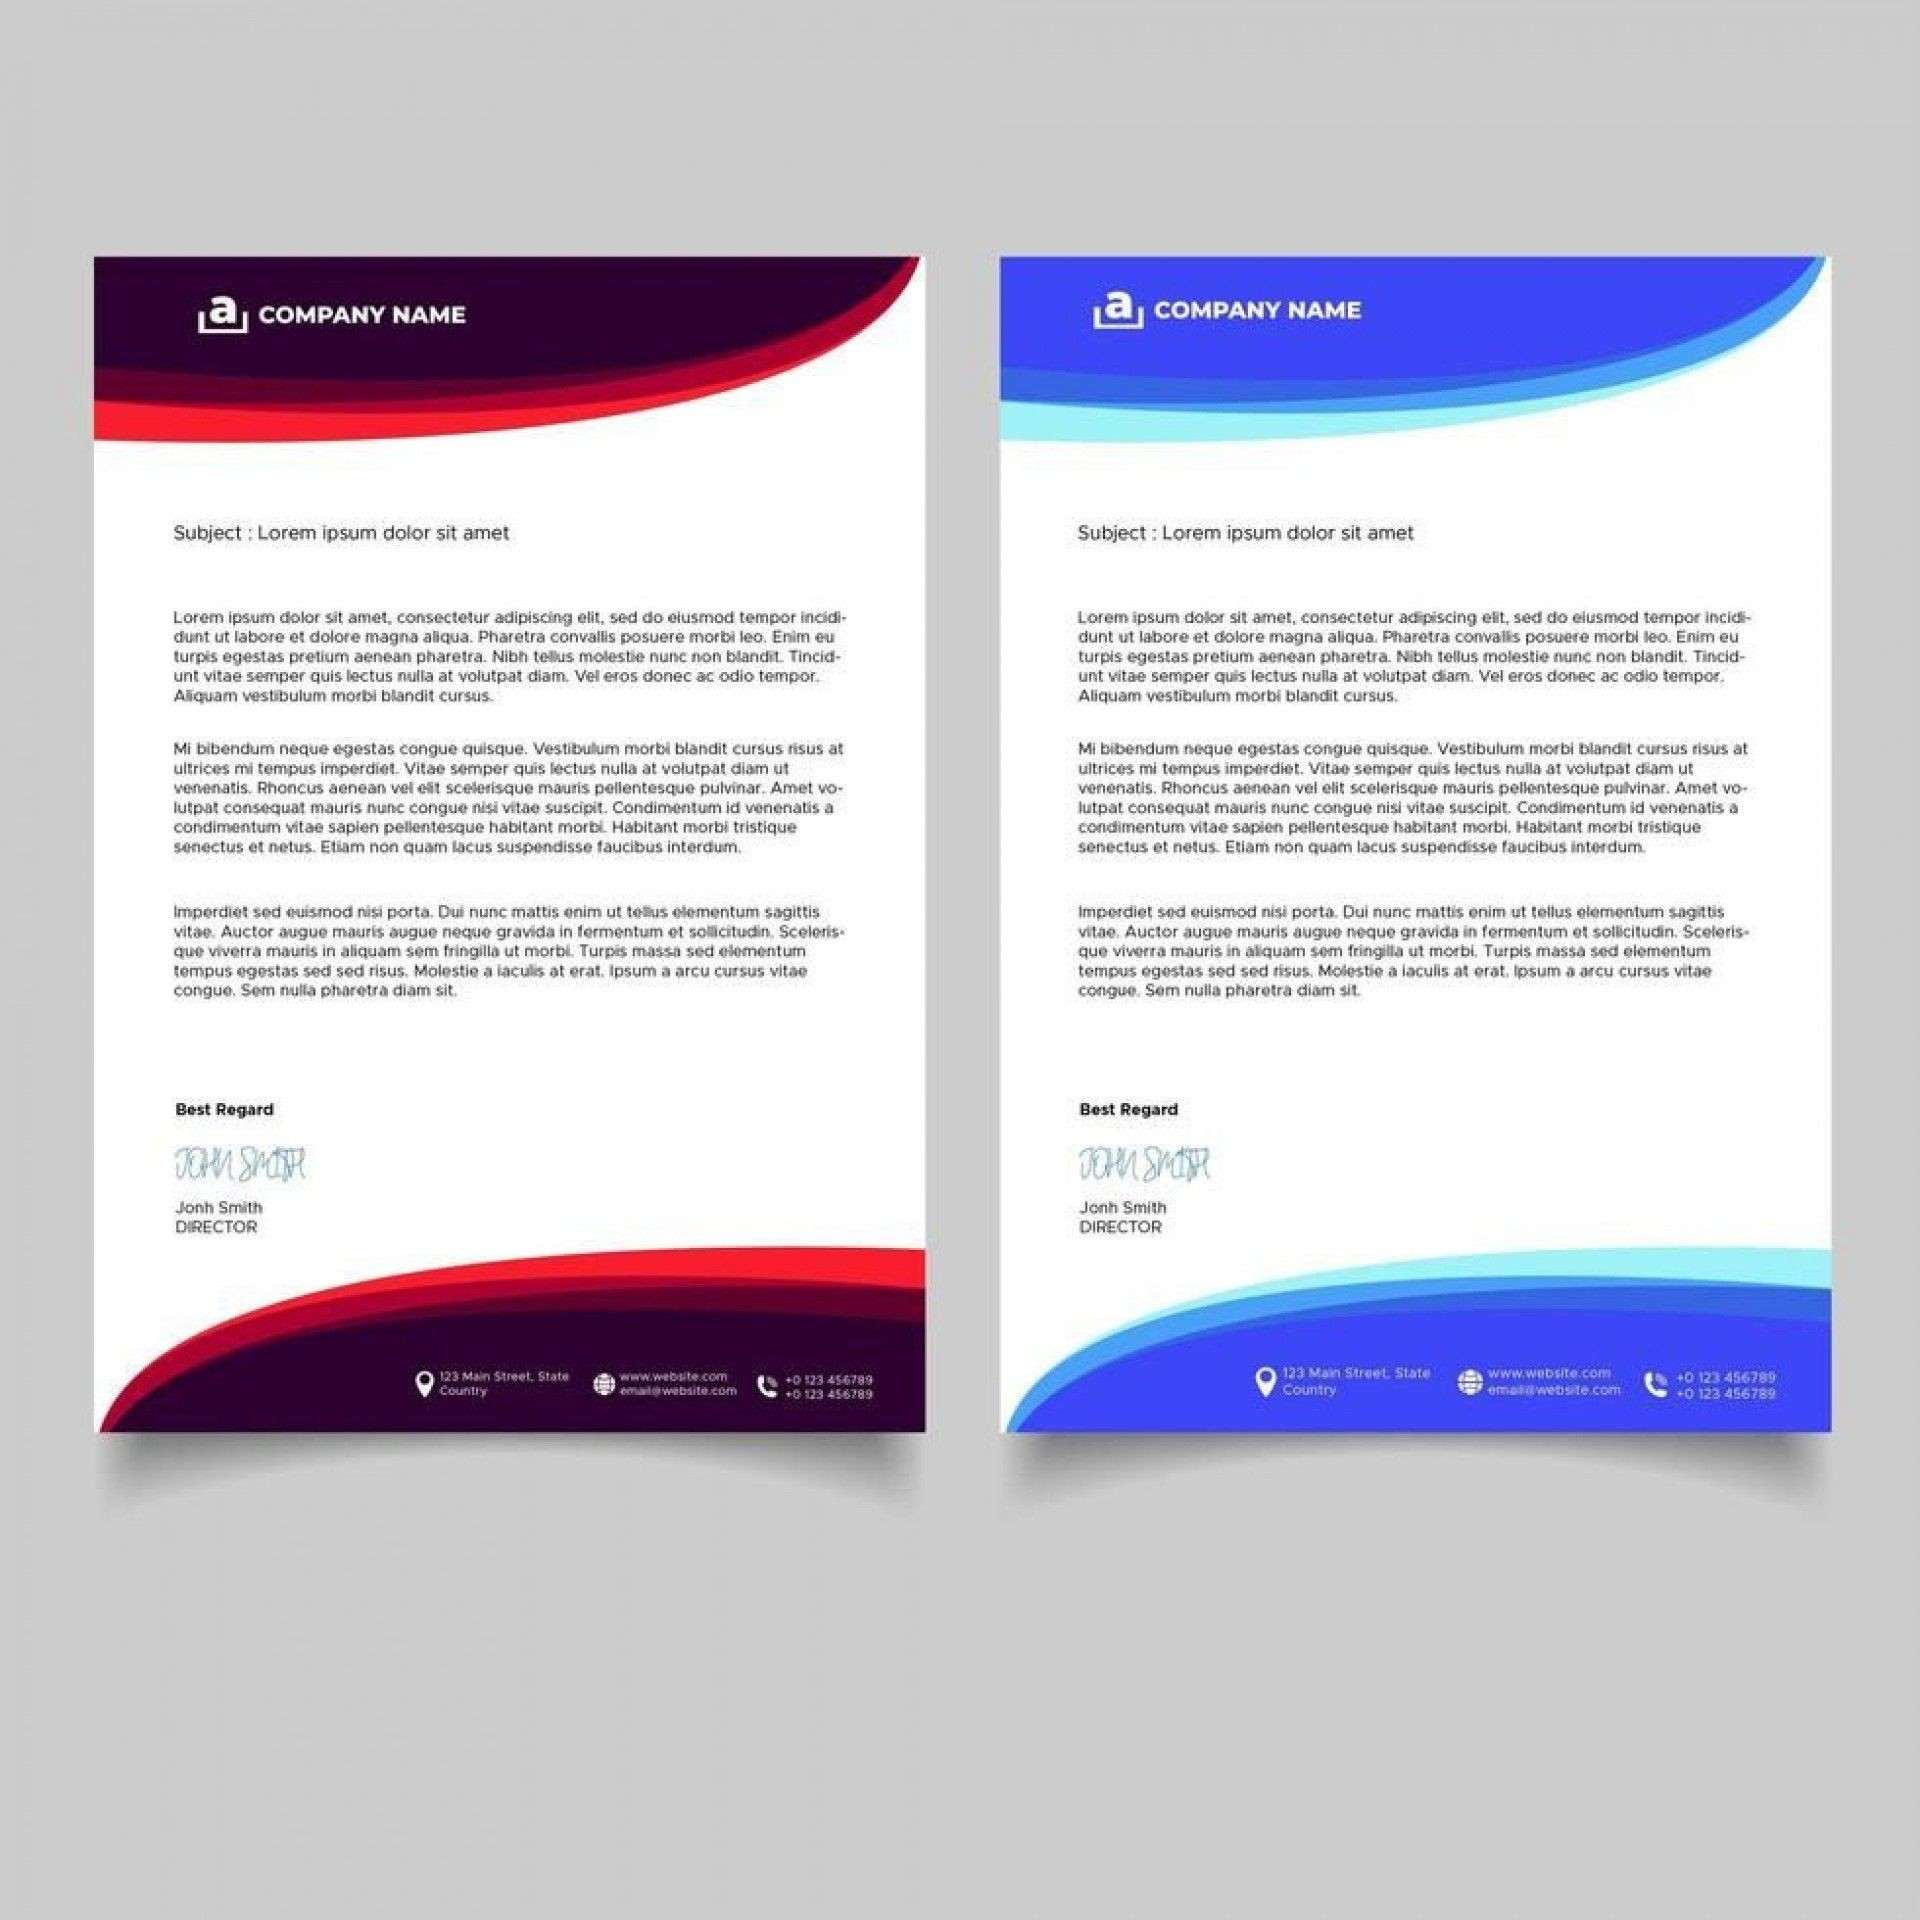 009 Wonderful Letterhead Template Free Download Ai Design  File1920